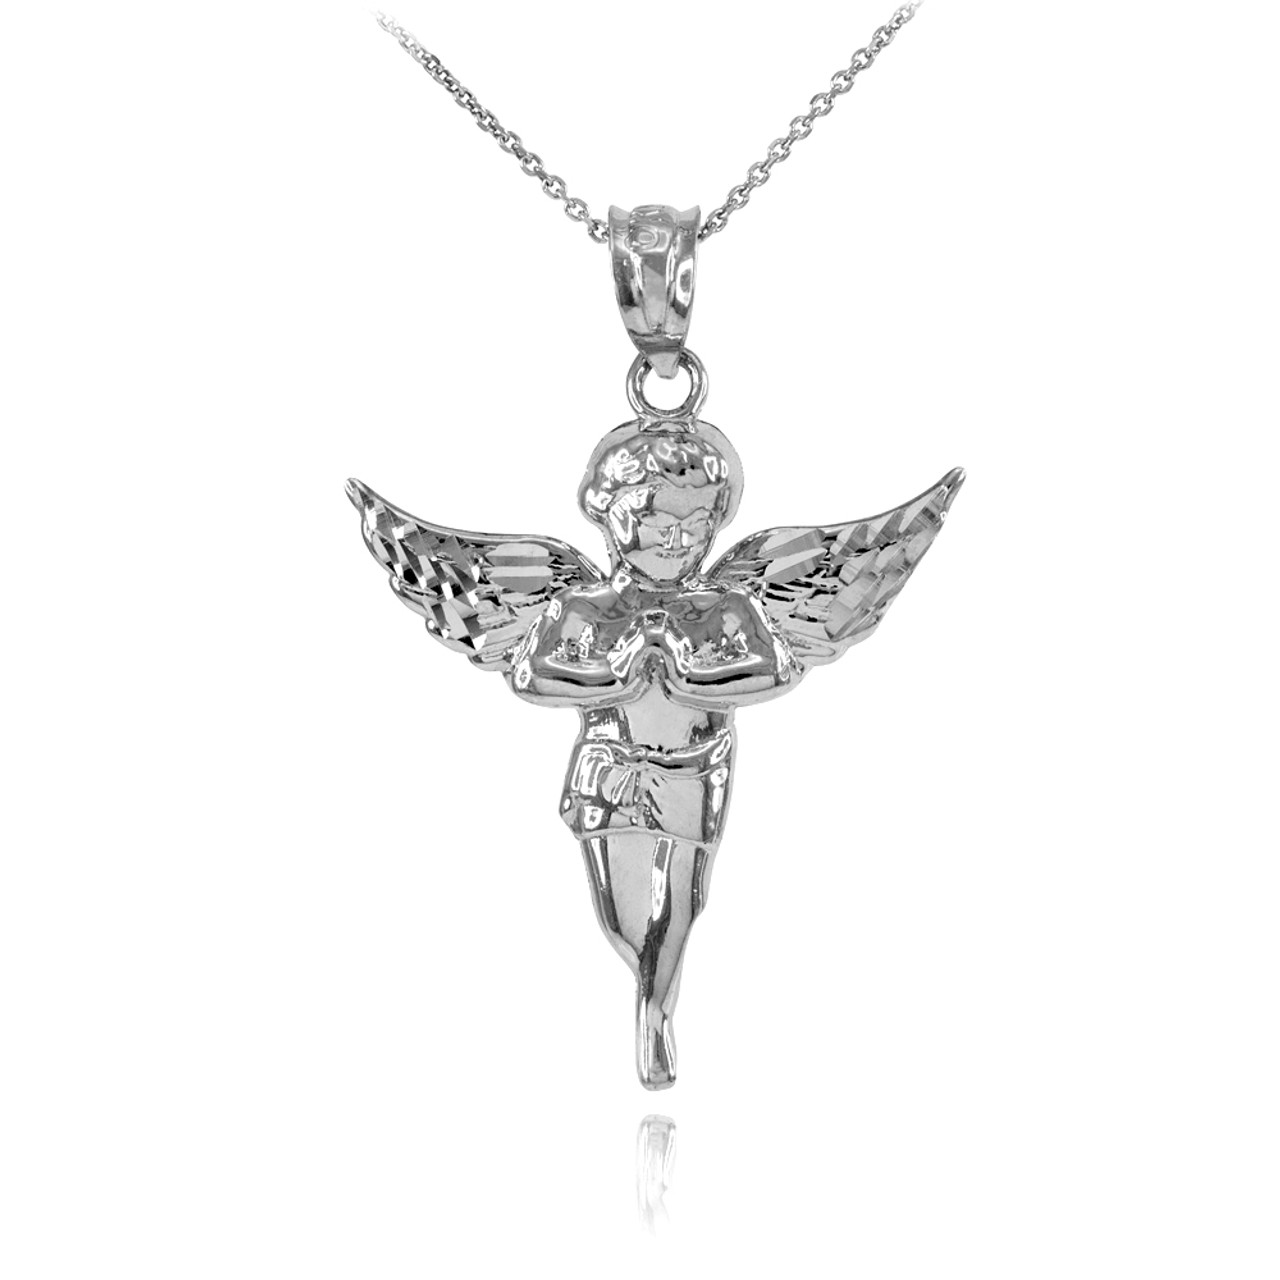 14k White Gold Polished Cut-out Angel Pendant